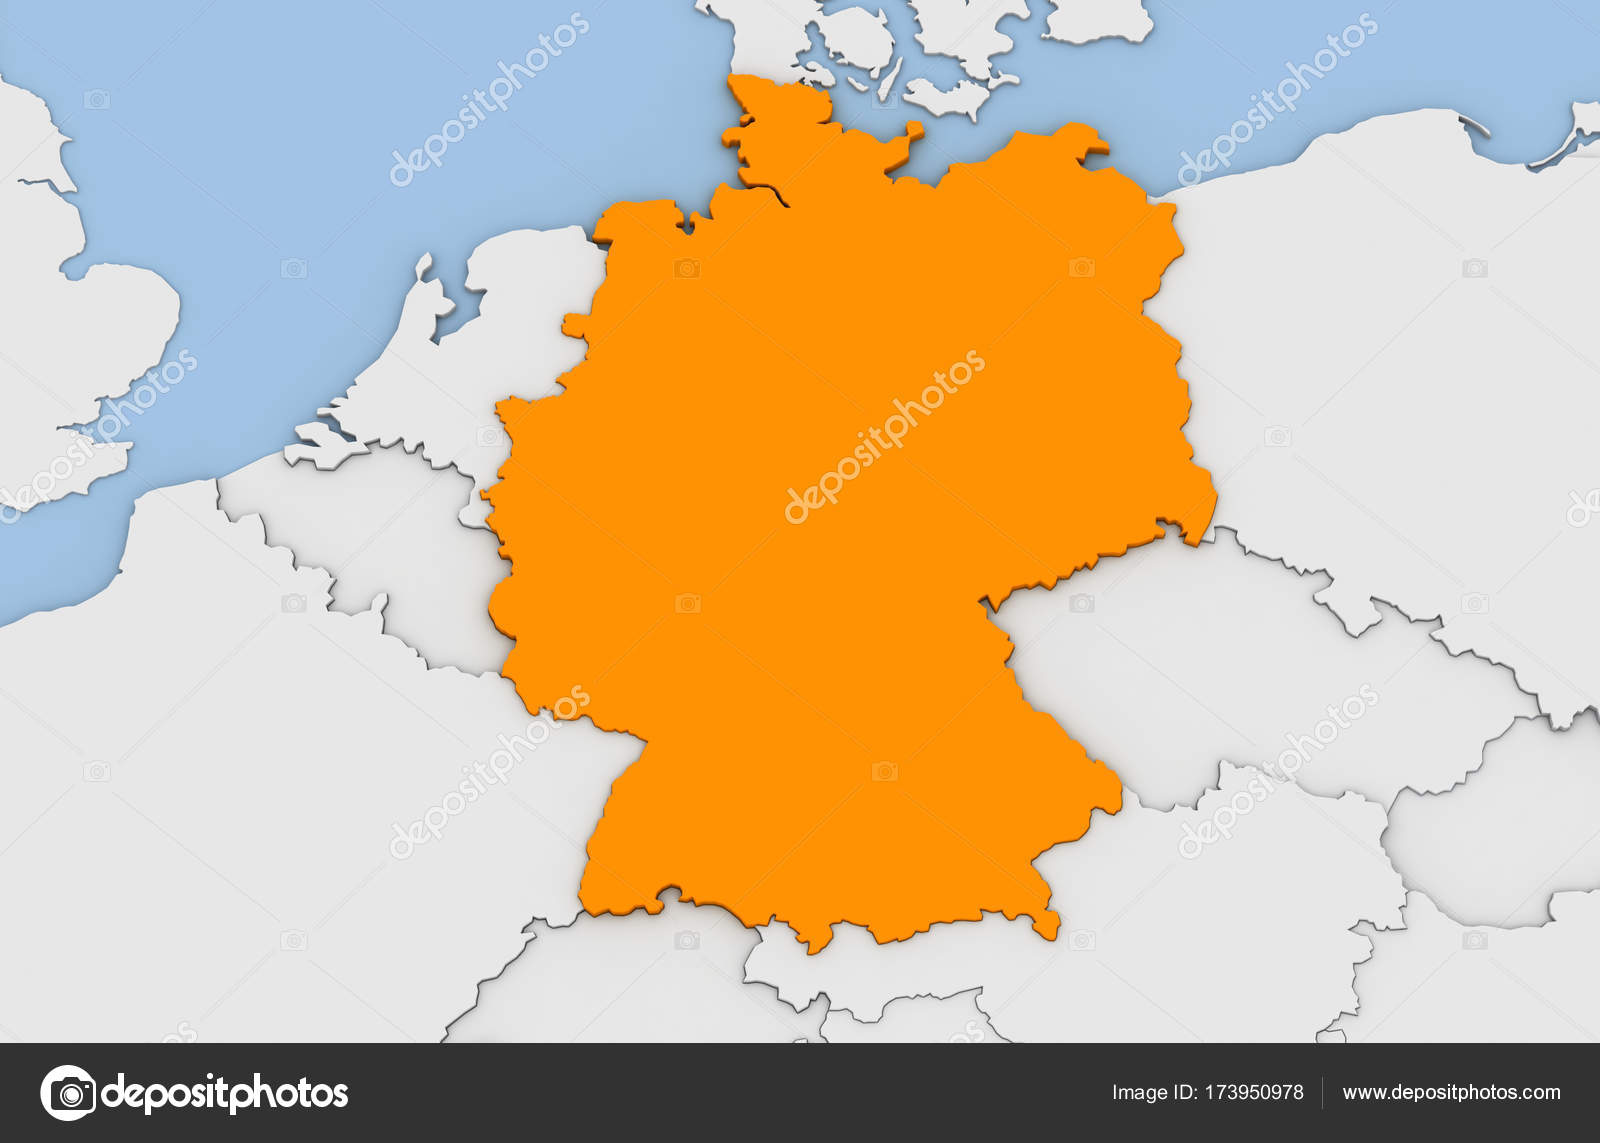 Map Of Germany 3d.3d Render Of Abstract Map Of Germany Stock Photo C Oorka5 173950978